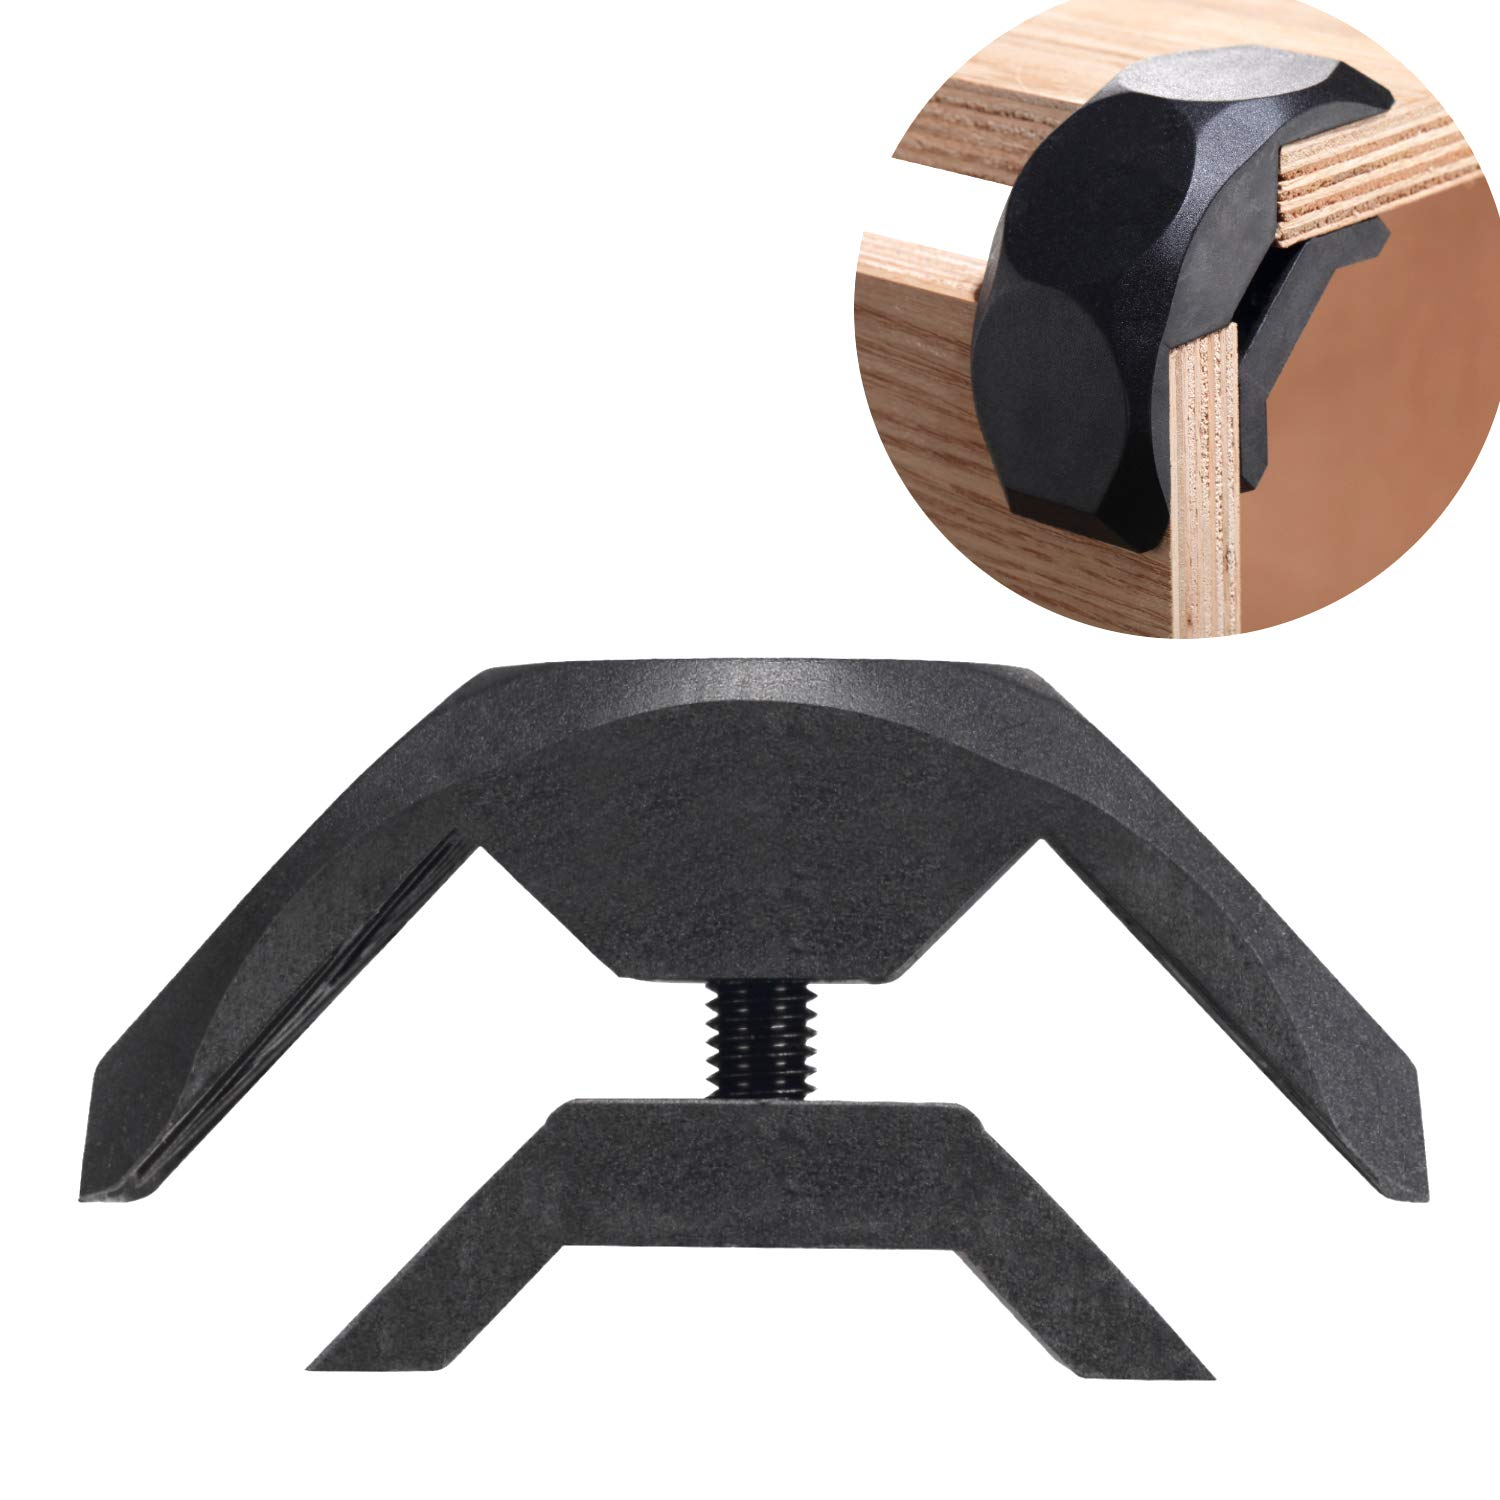 Modular Connectors Angle Clamp Board Joint System Plastic 2-Way 90°Set for Home Creative DIY Furniture Wood Shelves,Fit for 0.63'' to 0.75'' Thick Board (8 Pcs, Black)